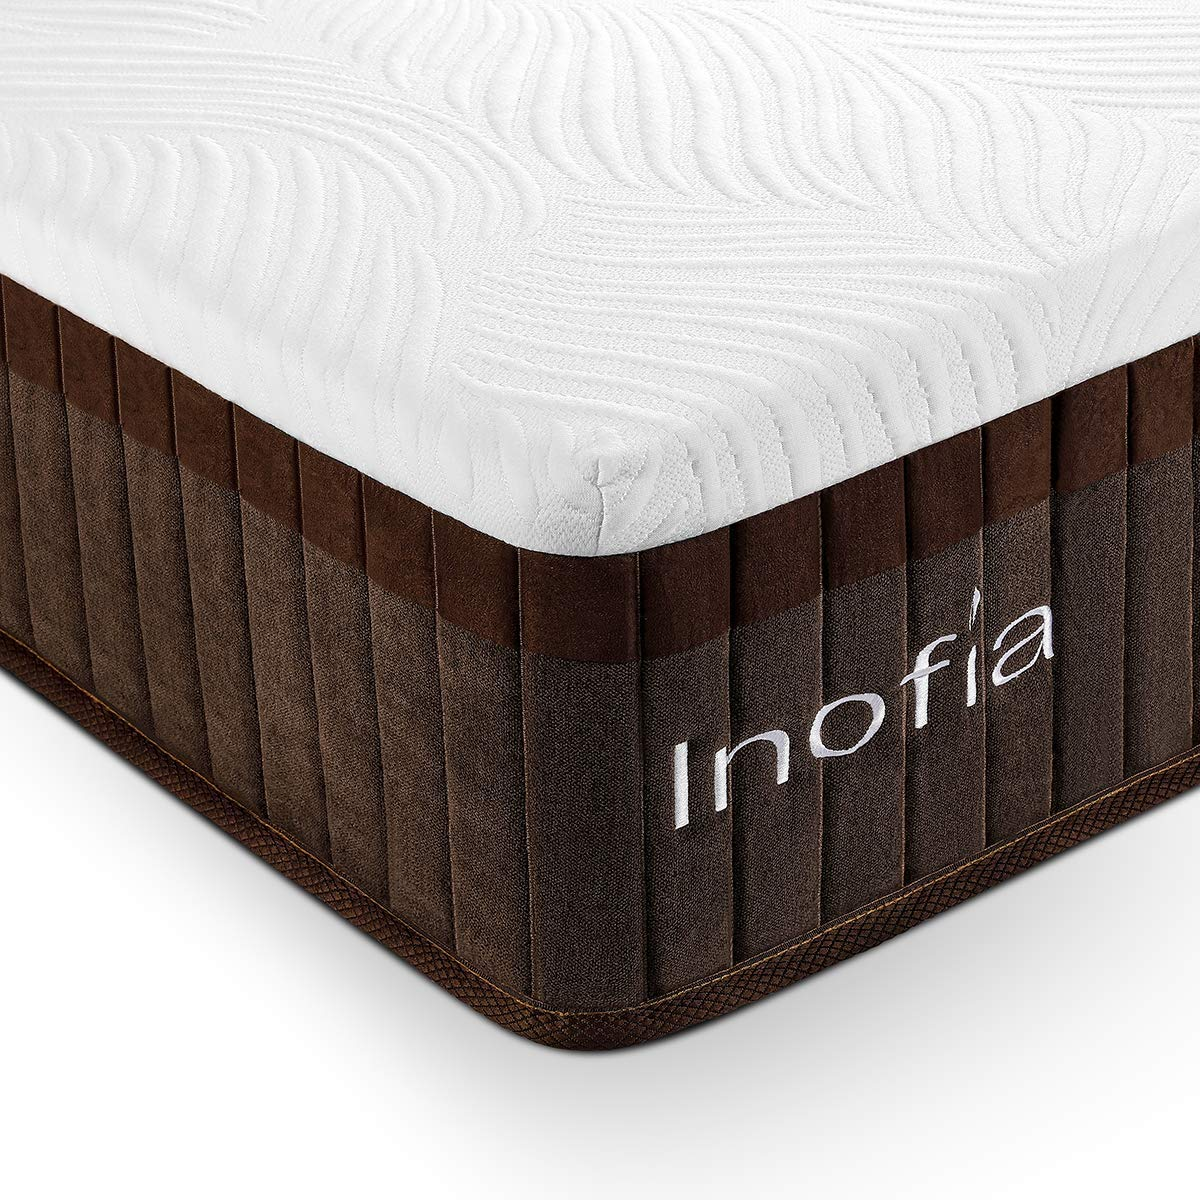 Inofia Full Mattress, Bed in a Box, Sleeps Cooler with More Pressure Relief & Support Than Memory Foam, CertiPUR-US Certified, Medium Firm, 10 Year U.S. Warranty, Full Size, 11.4 Inches